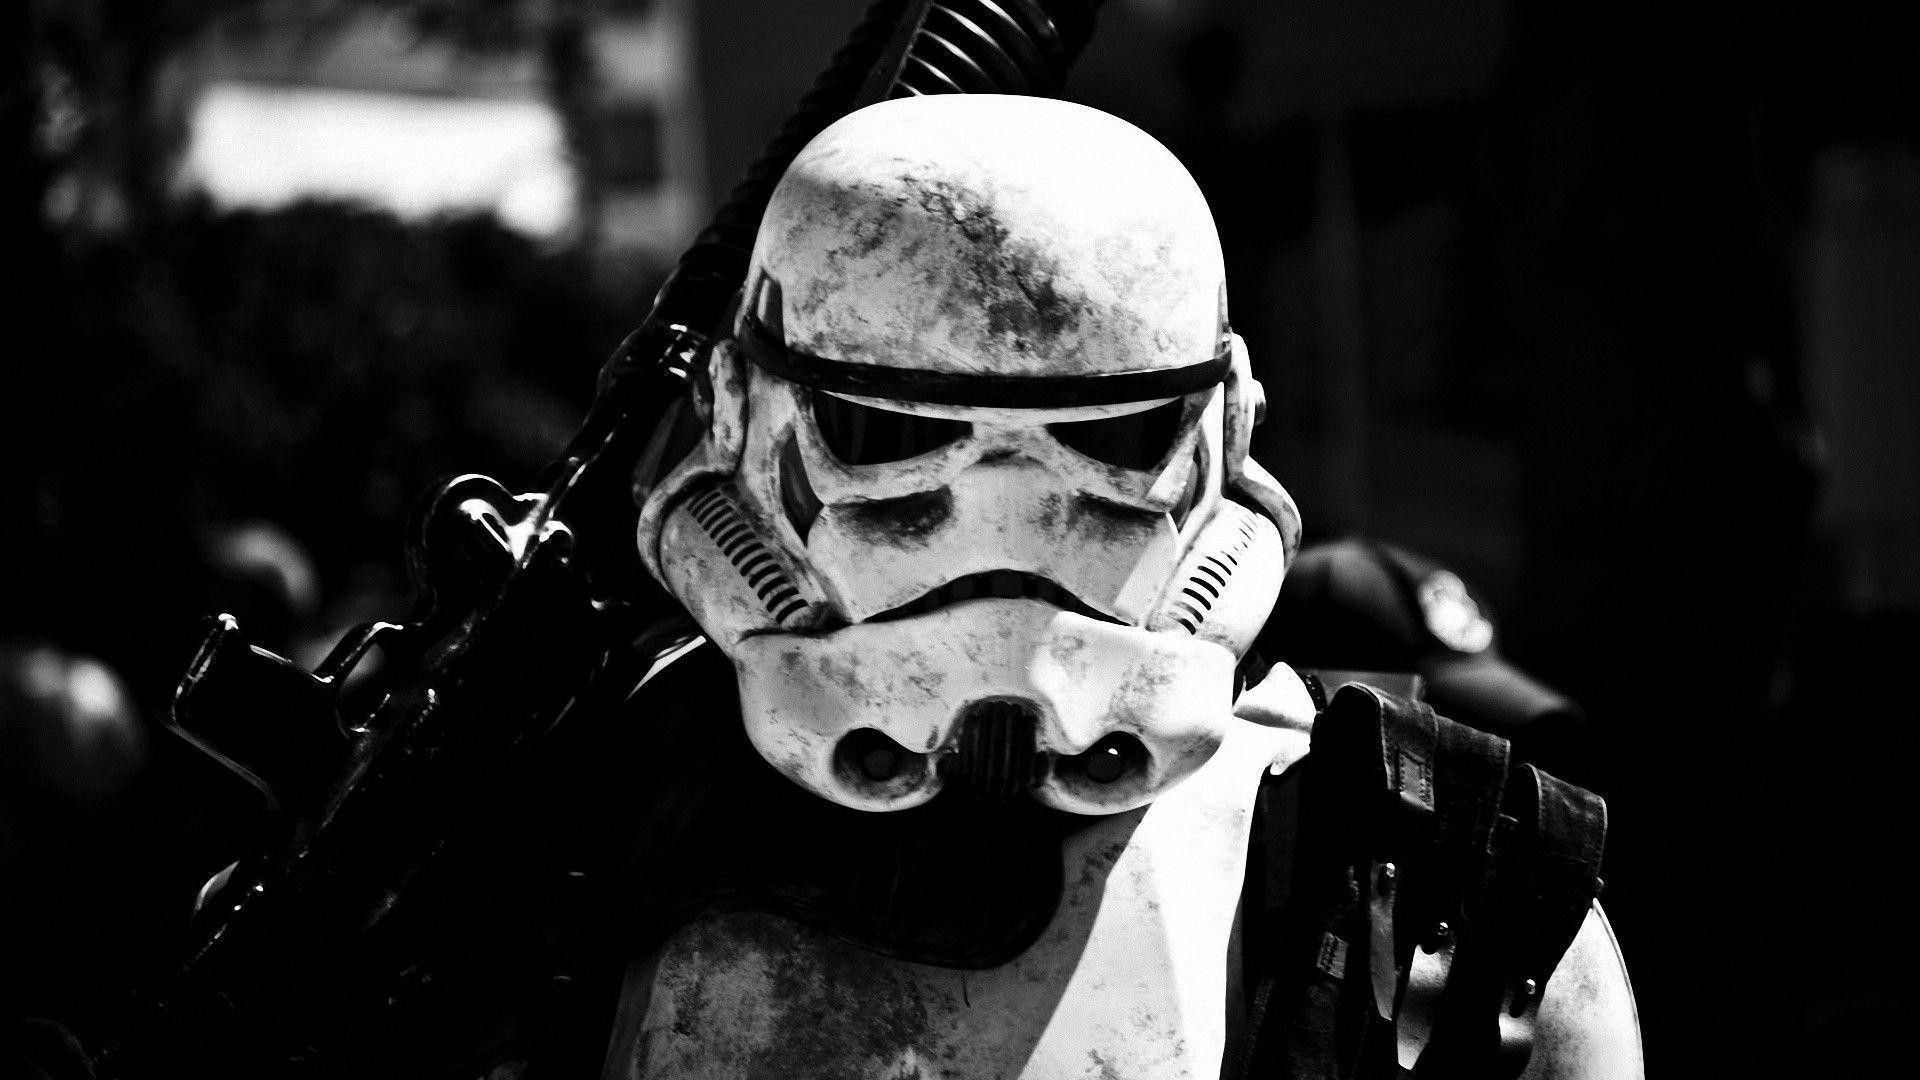 Res 1920x1080, Star wars stormtrooper Wallpapers